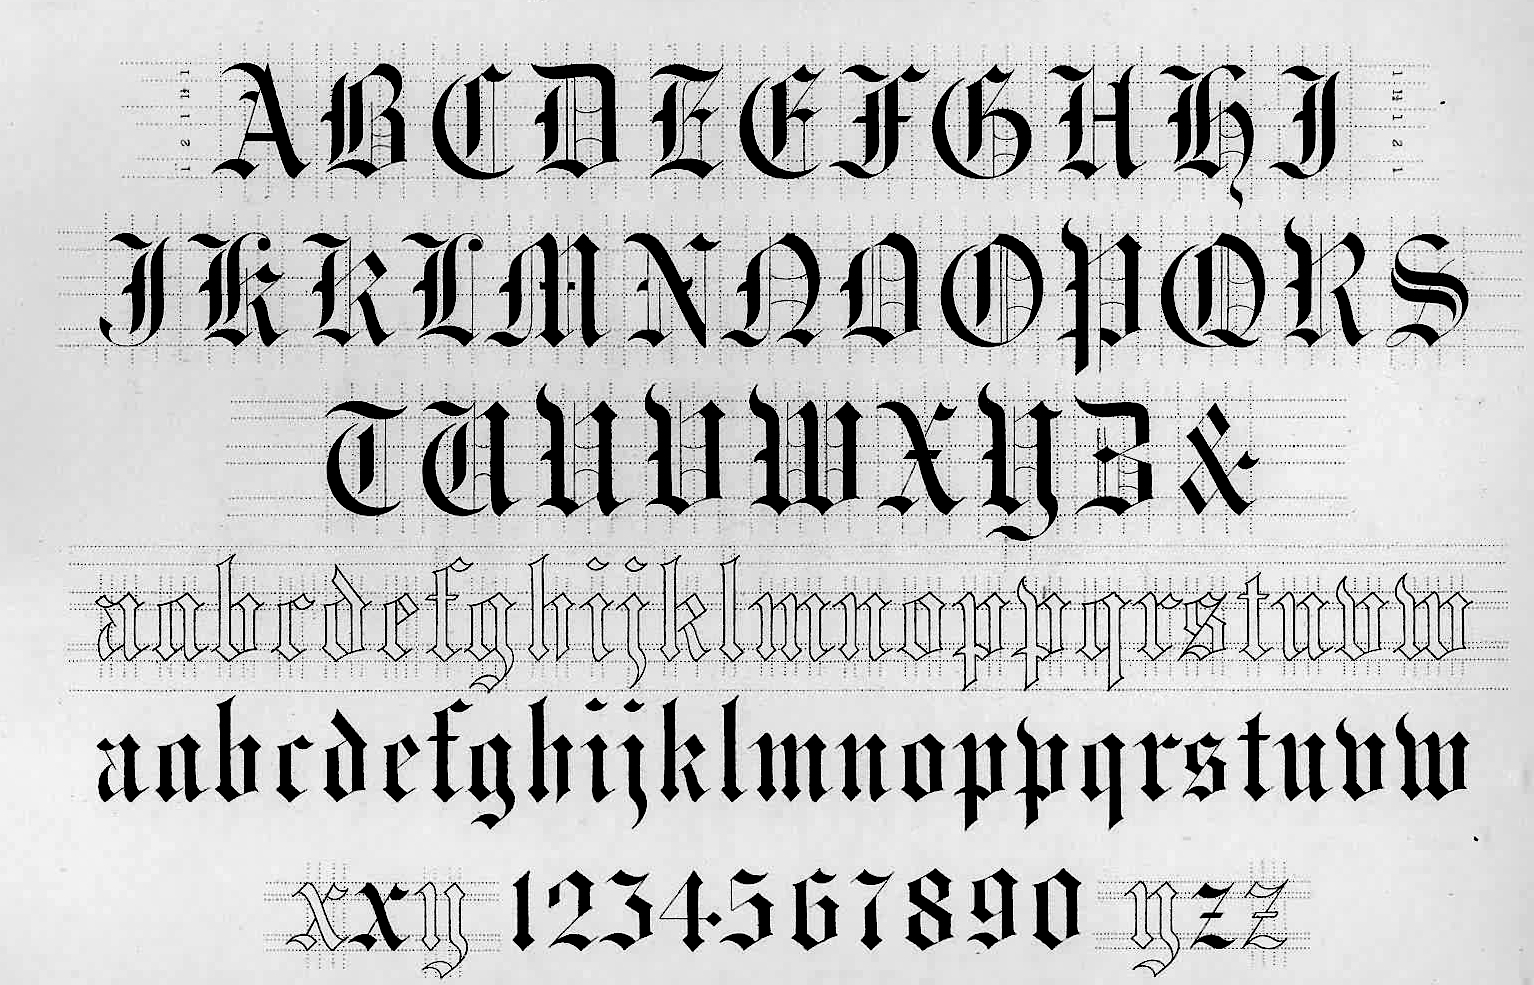 Calligraphy Font Old English Alphabet Tattoo